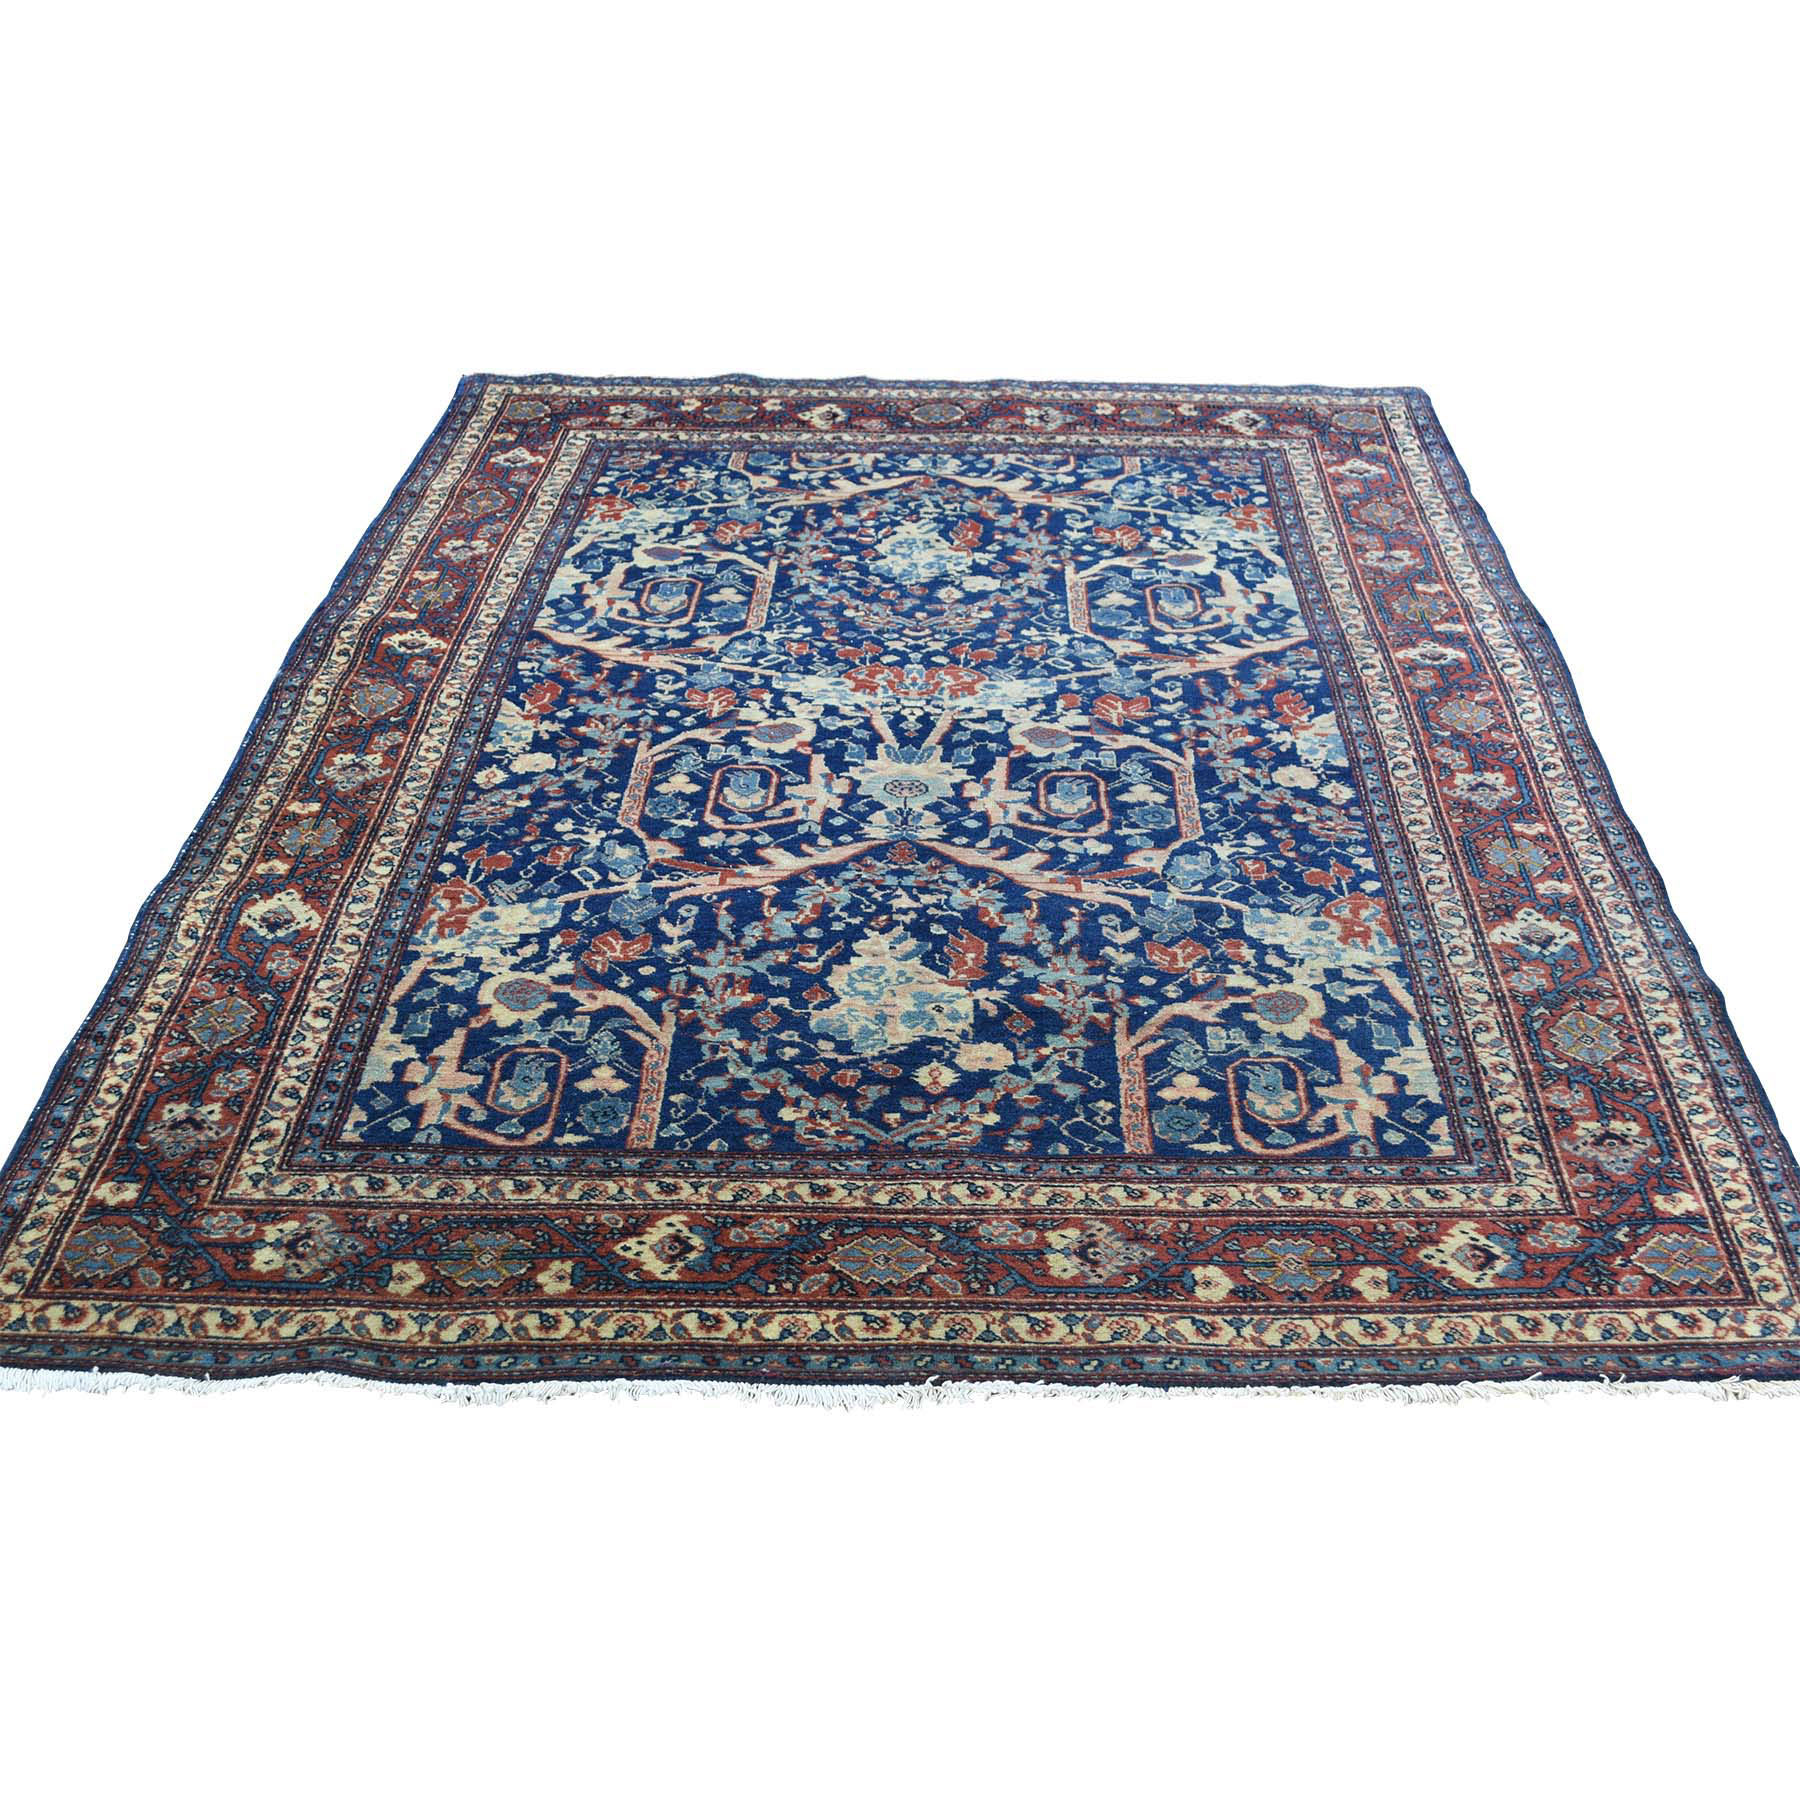 "4'6""X6'3"" Hand-Knotted Antique Persian Tabriz Navy Blue Full Pile Rug moacd78c"